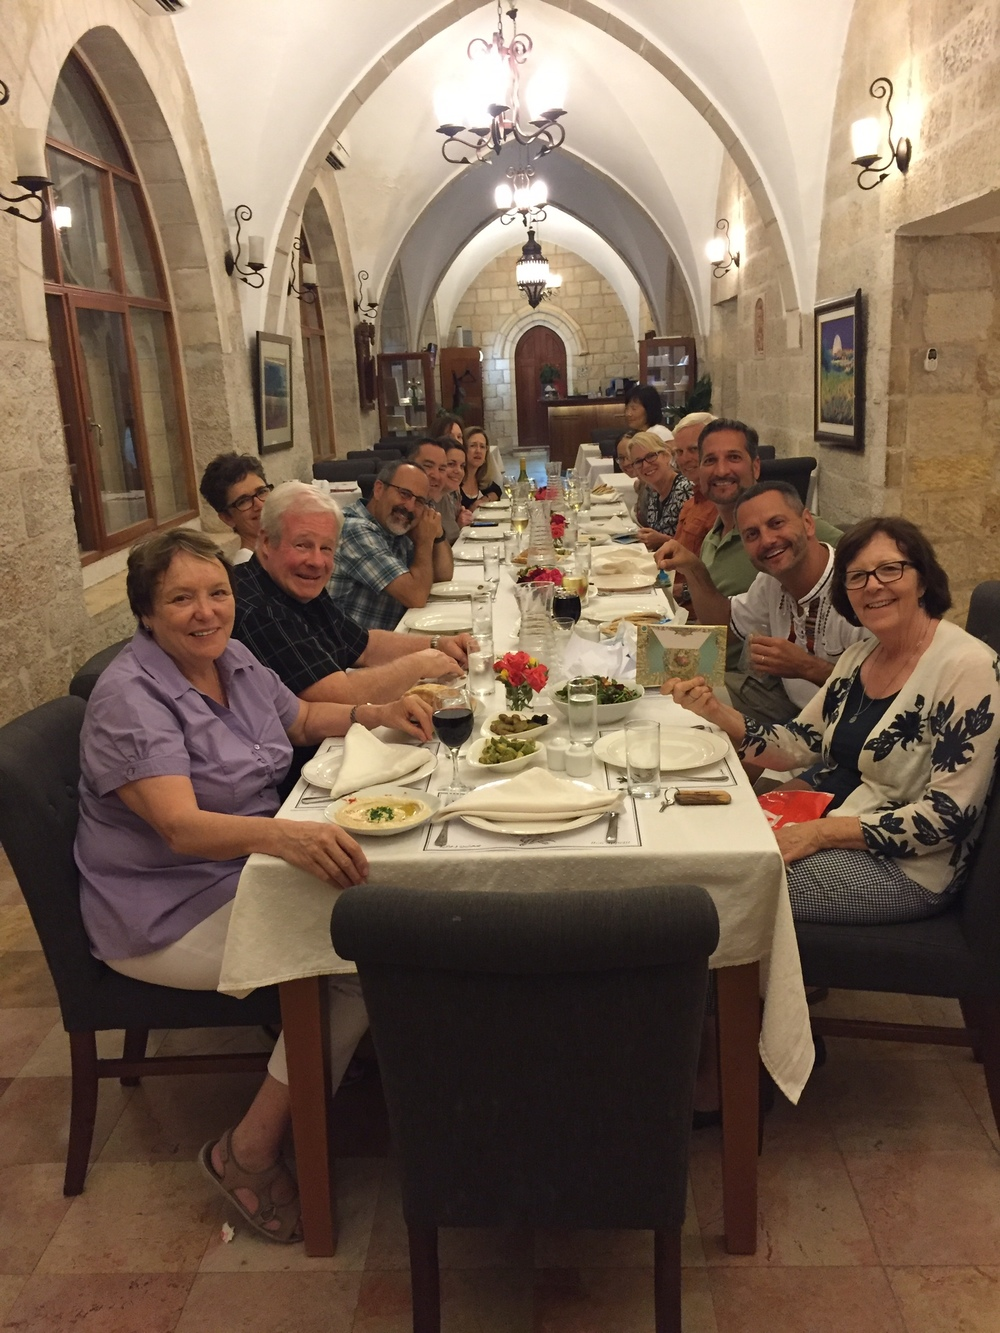 Day 11: Benedictine vespers at Abu Gosh (possible site of Emmaus) and last dinner at St. George's